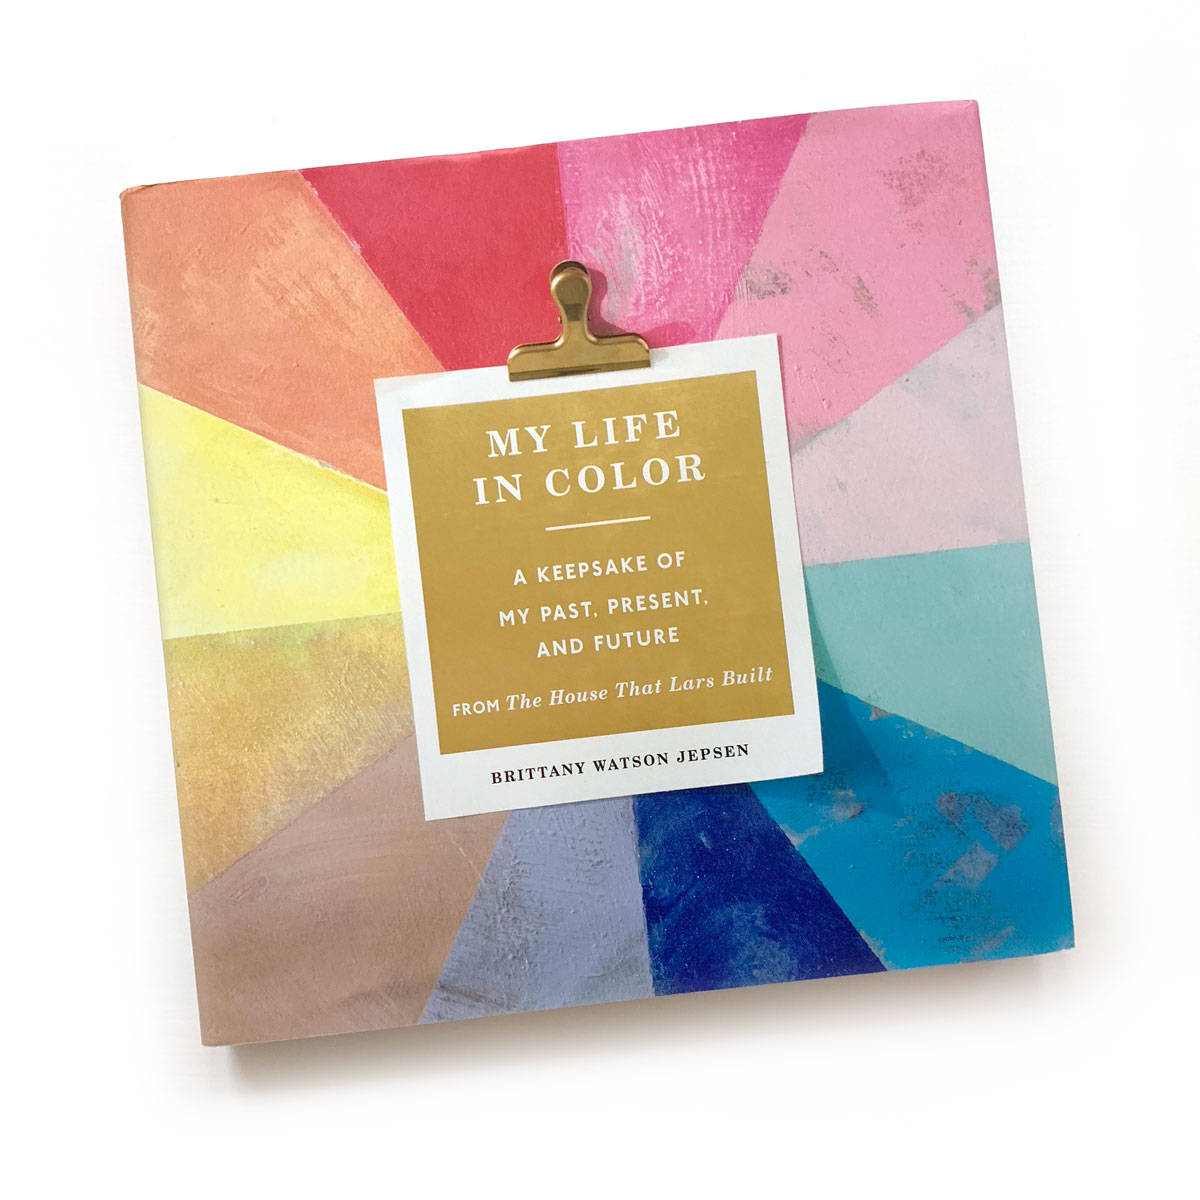 My Life in Color  by Brittany Watson Jepsen:  This book arrived not long before I left town, and is the companion to the Craft the Rainbow (another one for this list!), only it is more of a workbook, which I love. I haven't spent too much time with this one yet, but I'm looking forward to it!